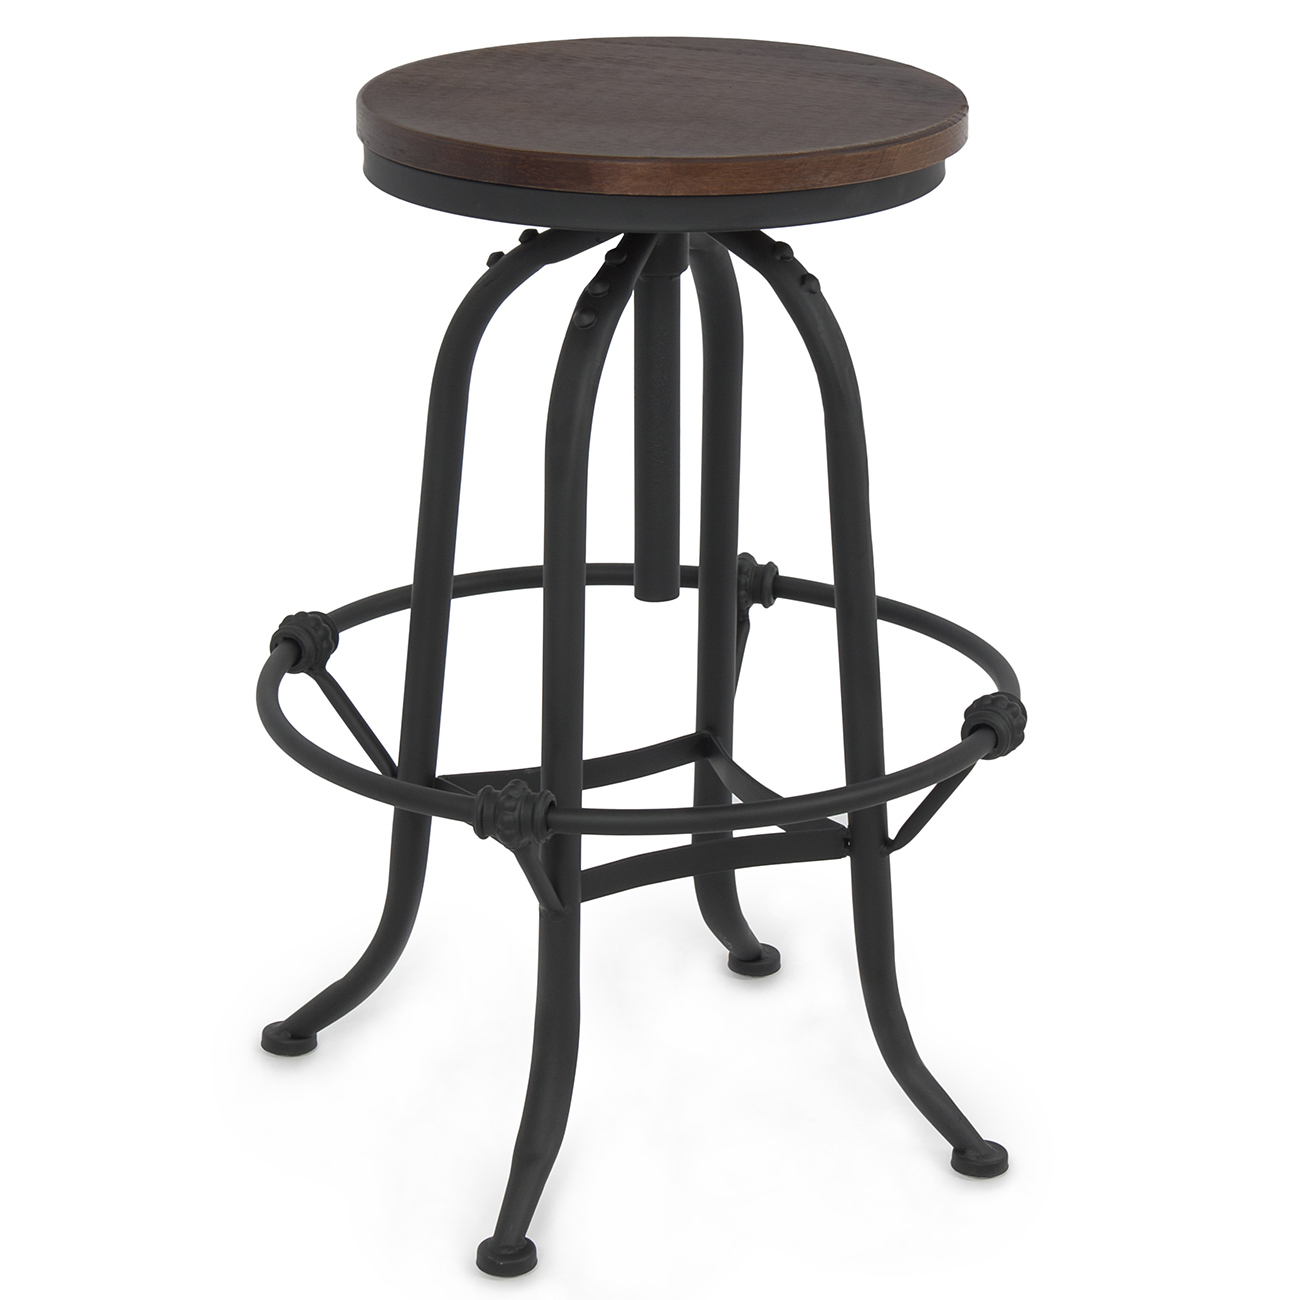 countertop height folding chairs brown wedding rustic bar stool home adjustable seat